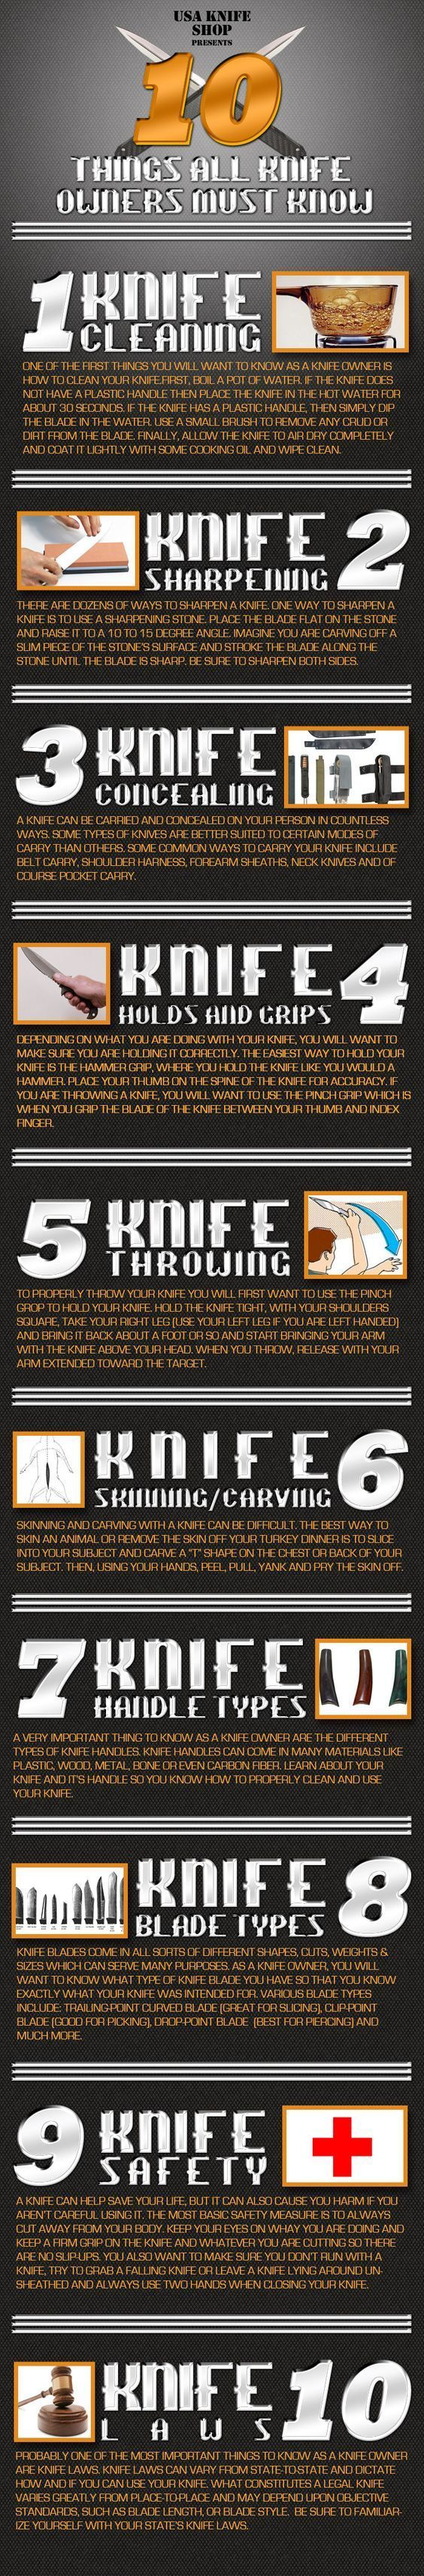 10 Knife Tips Every Knife Owner Should Know.   http://www.thegoodsurvivalist.com/if-all-you-knew-were-these-10-knife-tips-youd-know-way-more-than-most-knife-owners/